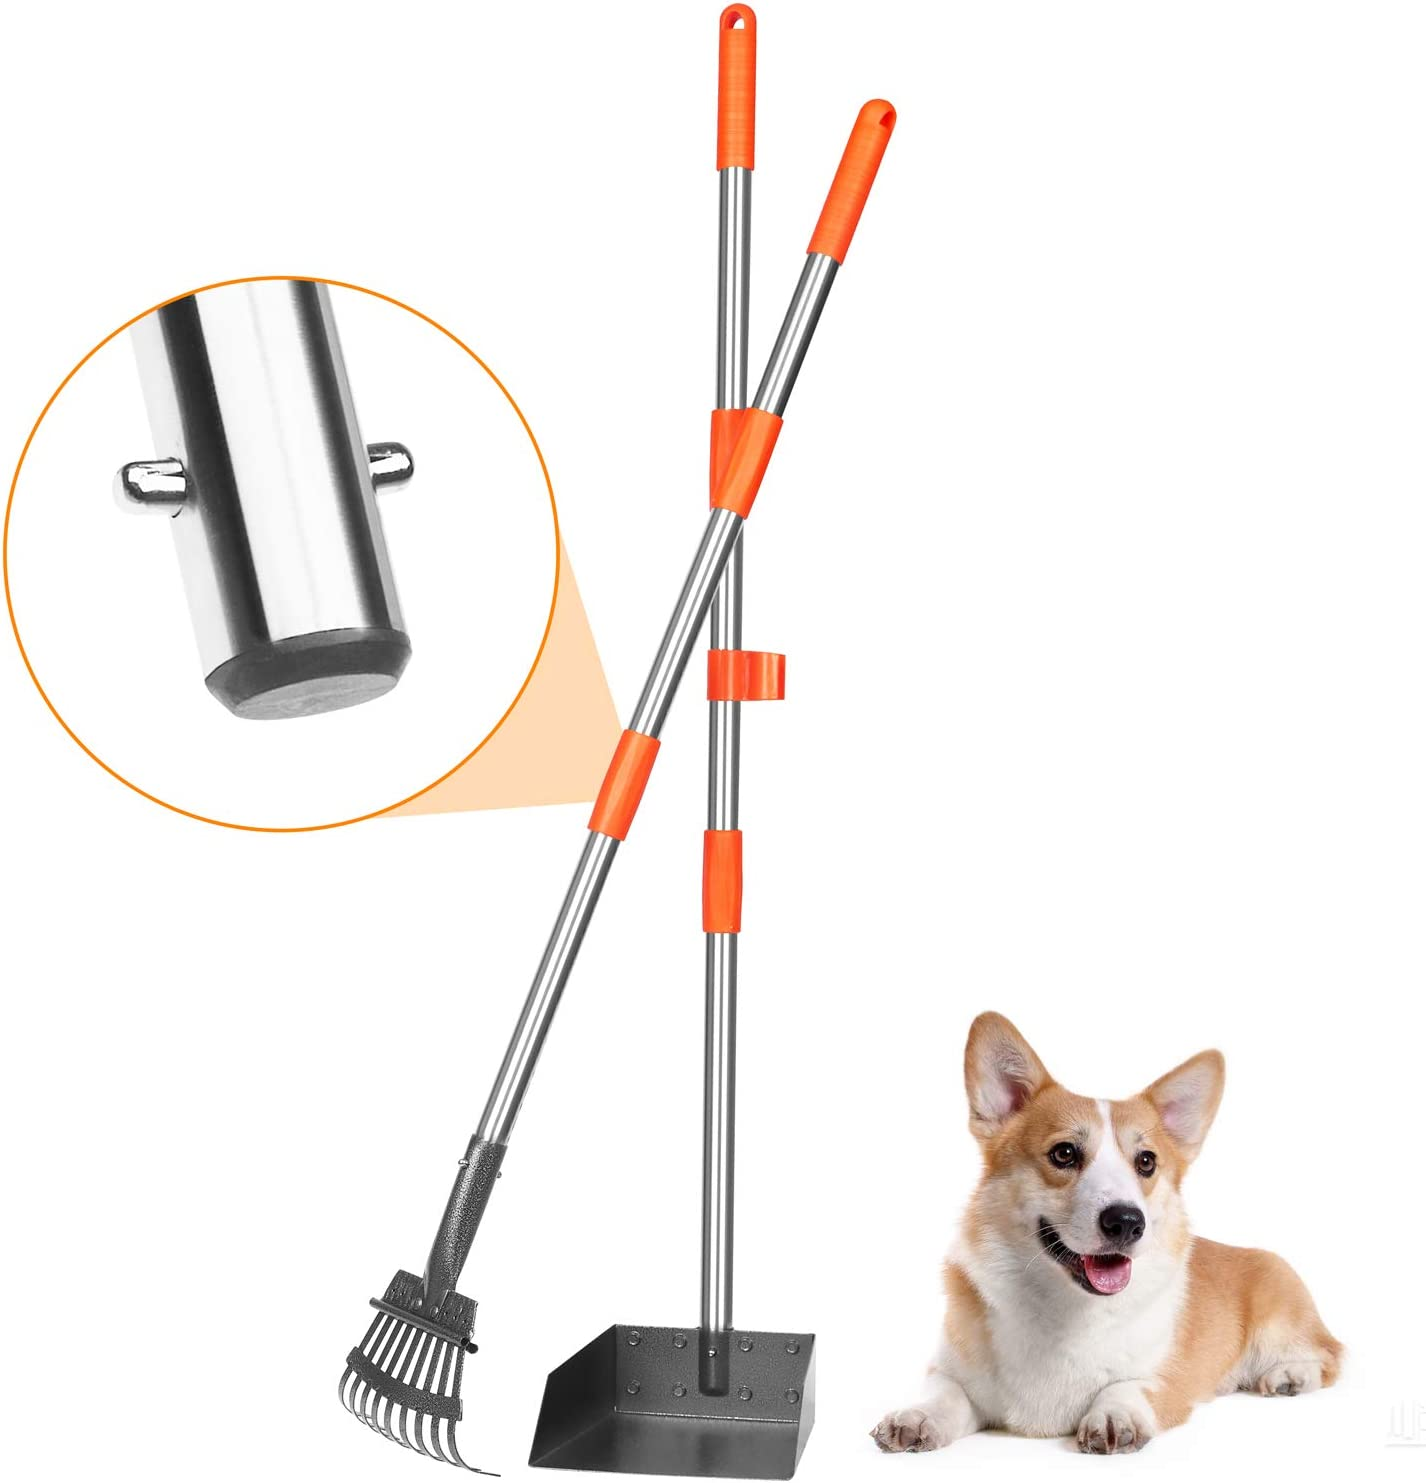 BABYLTRL Dog Pooper Scooper Stainless Metal R Pet and Tray Poop Tampa Manufacturer direct delivery Mall